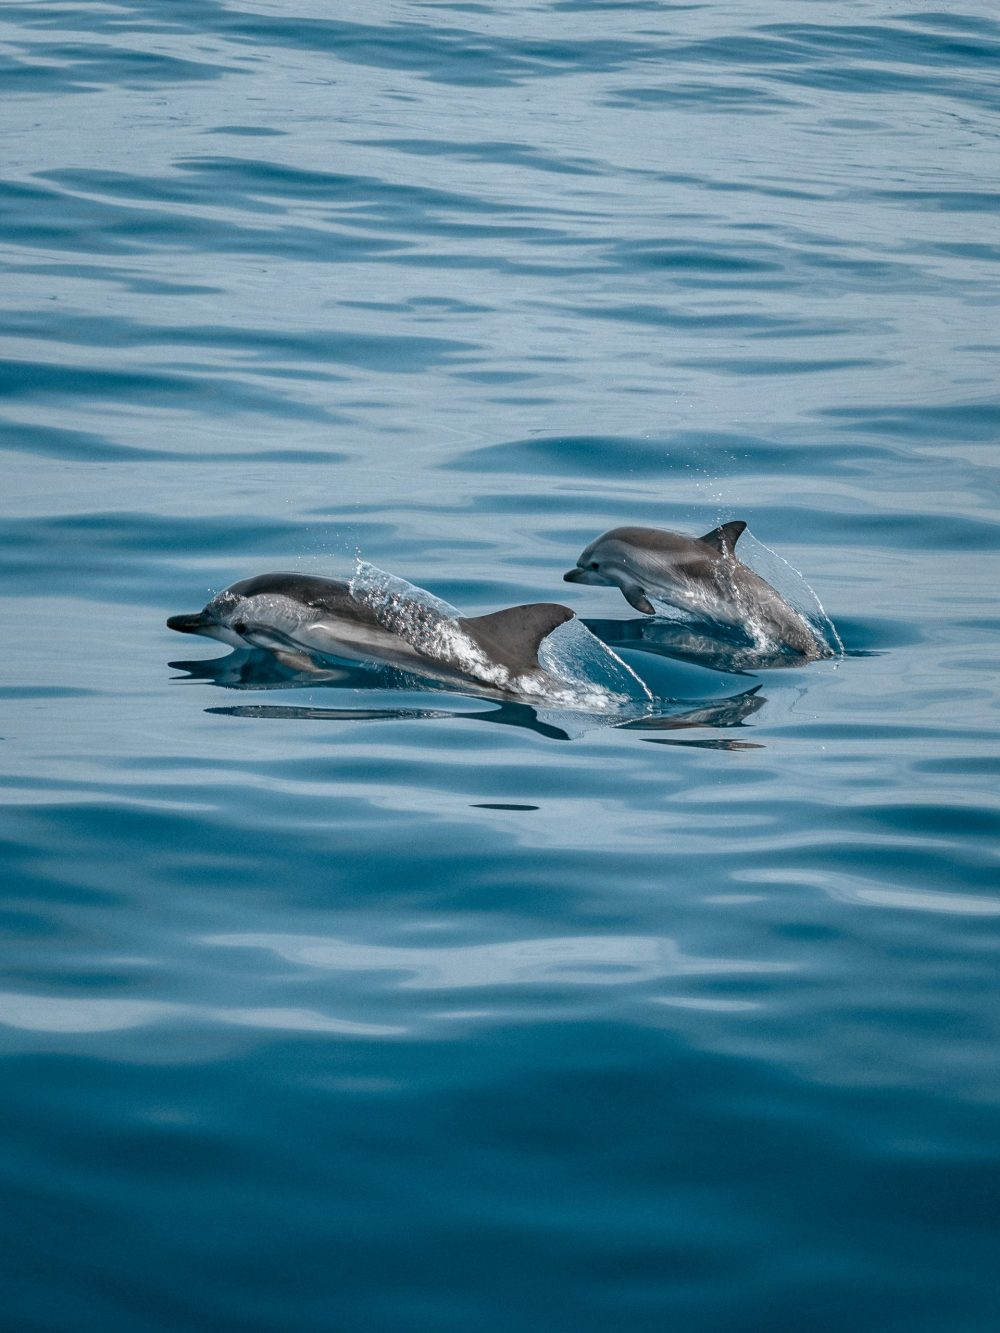 potential risk to dolphins due to unique fasting habits| Nature News Scotland